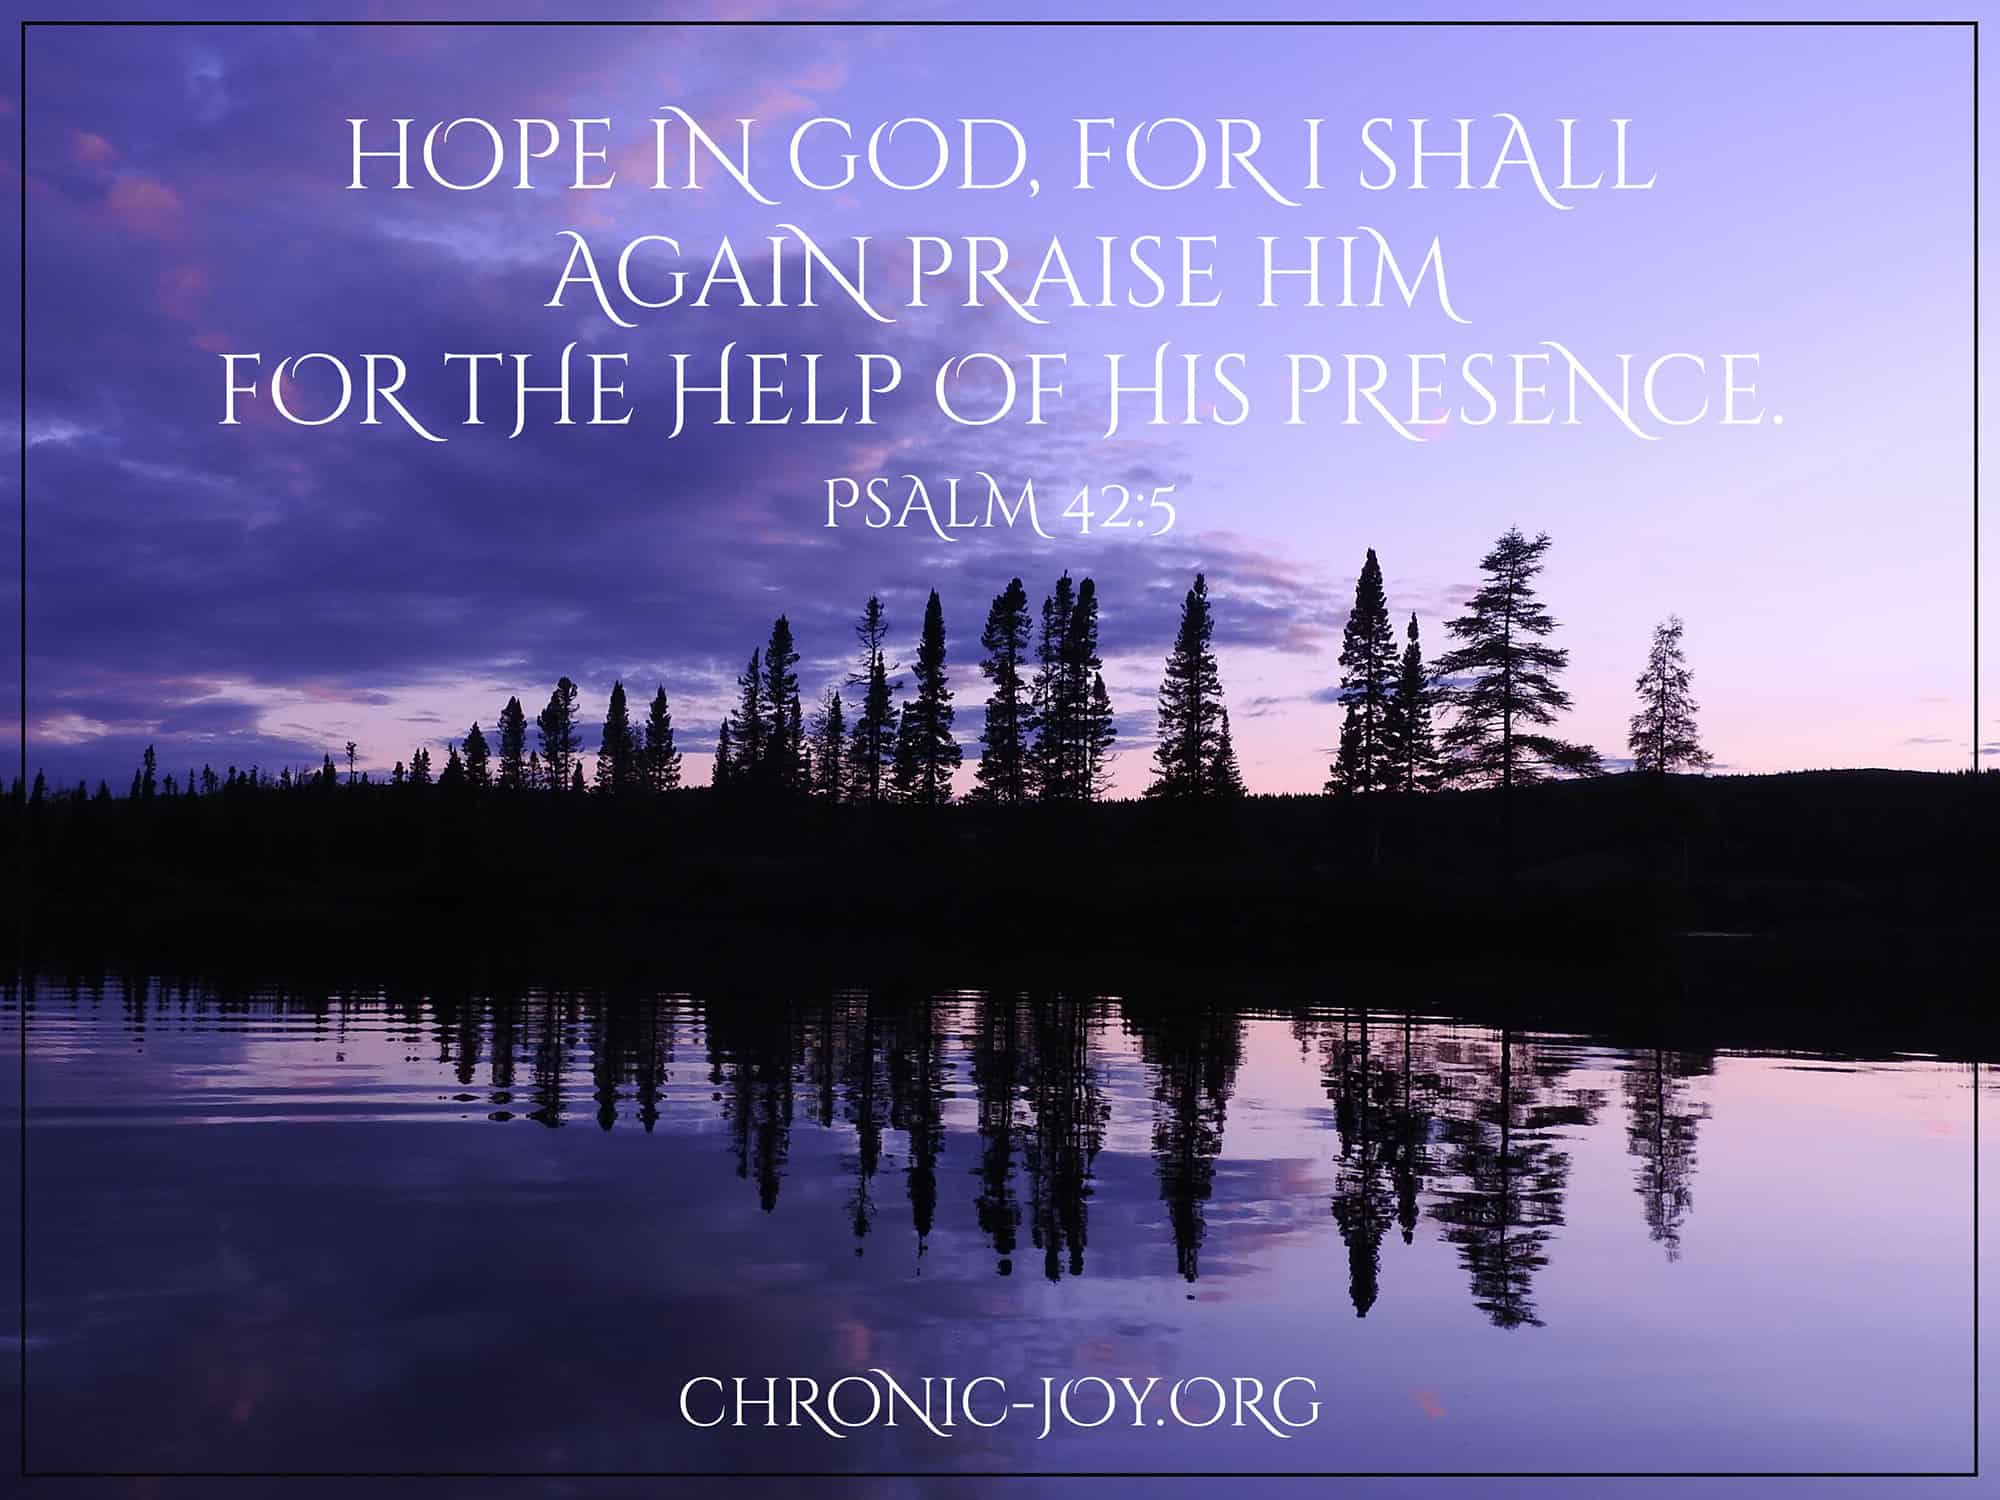 Hope in God, for I shall again praise Him.